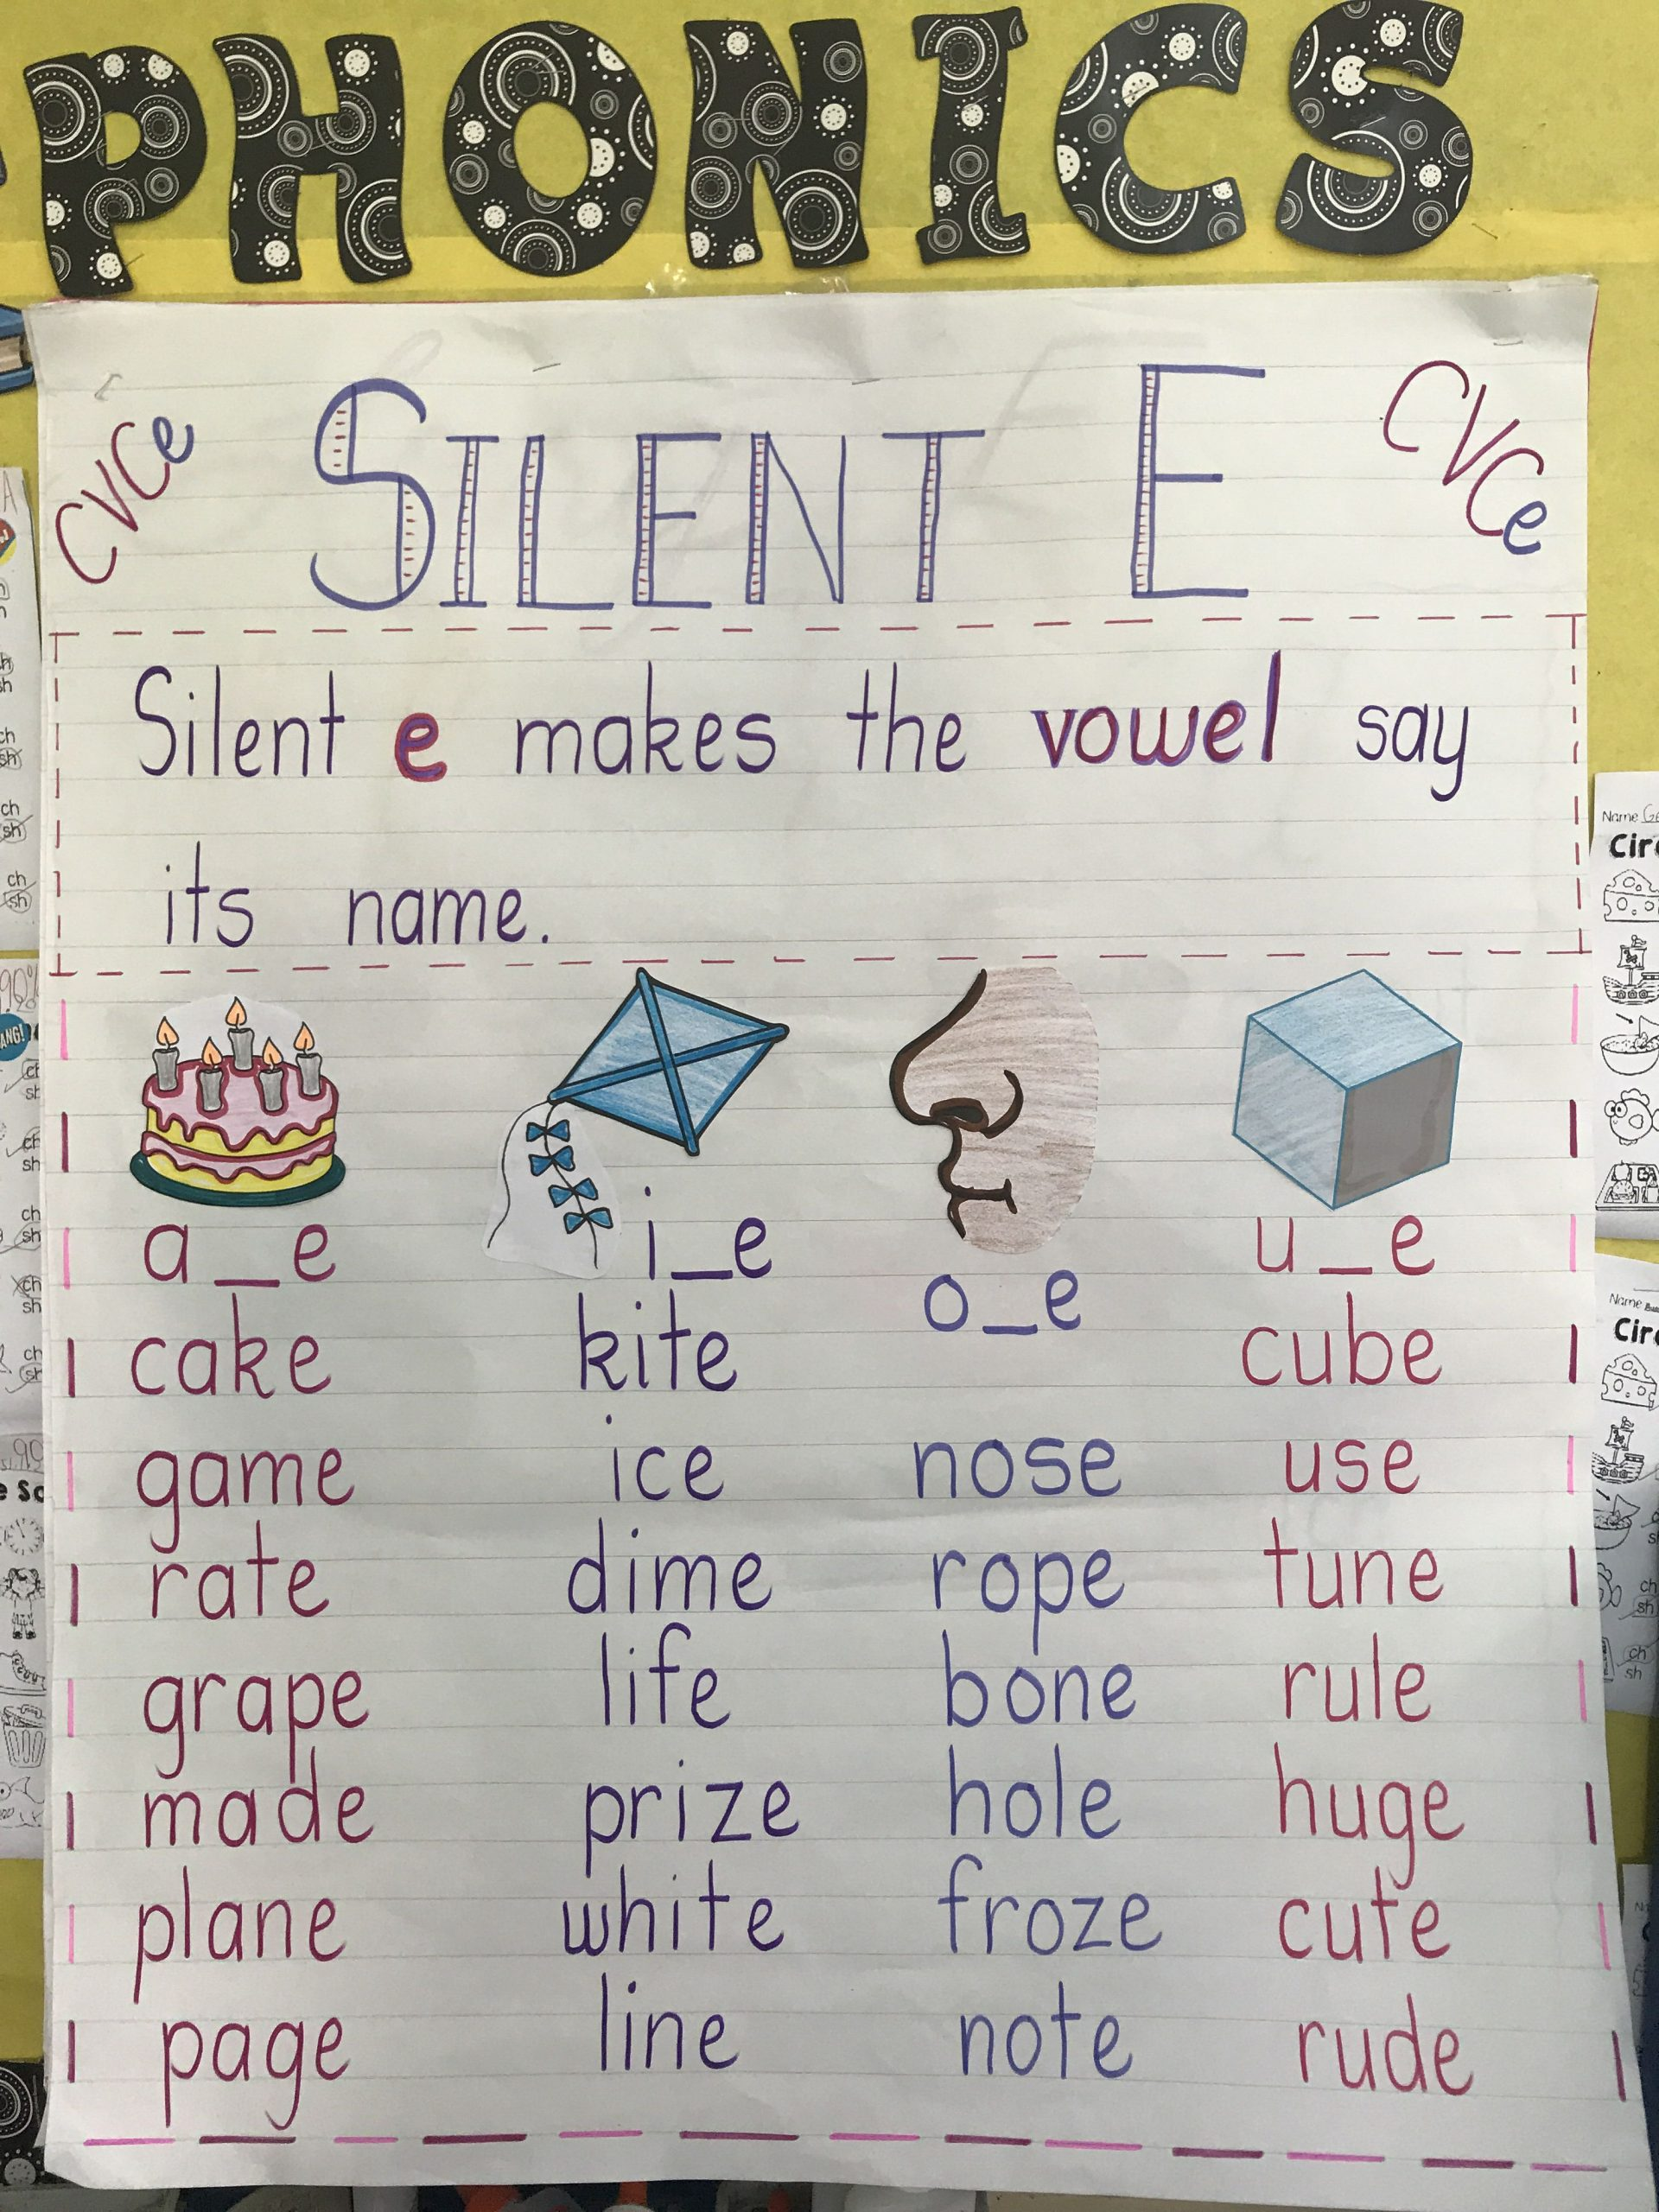 Long Vowel Silent E Worksheet 10 Helpful Cvce Anchor Charts & Ideas for Teaching Cvce Words